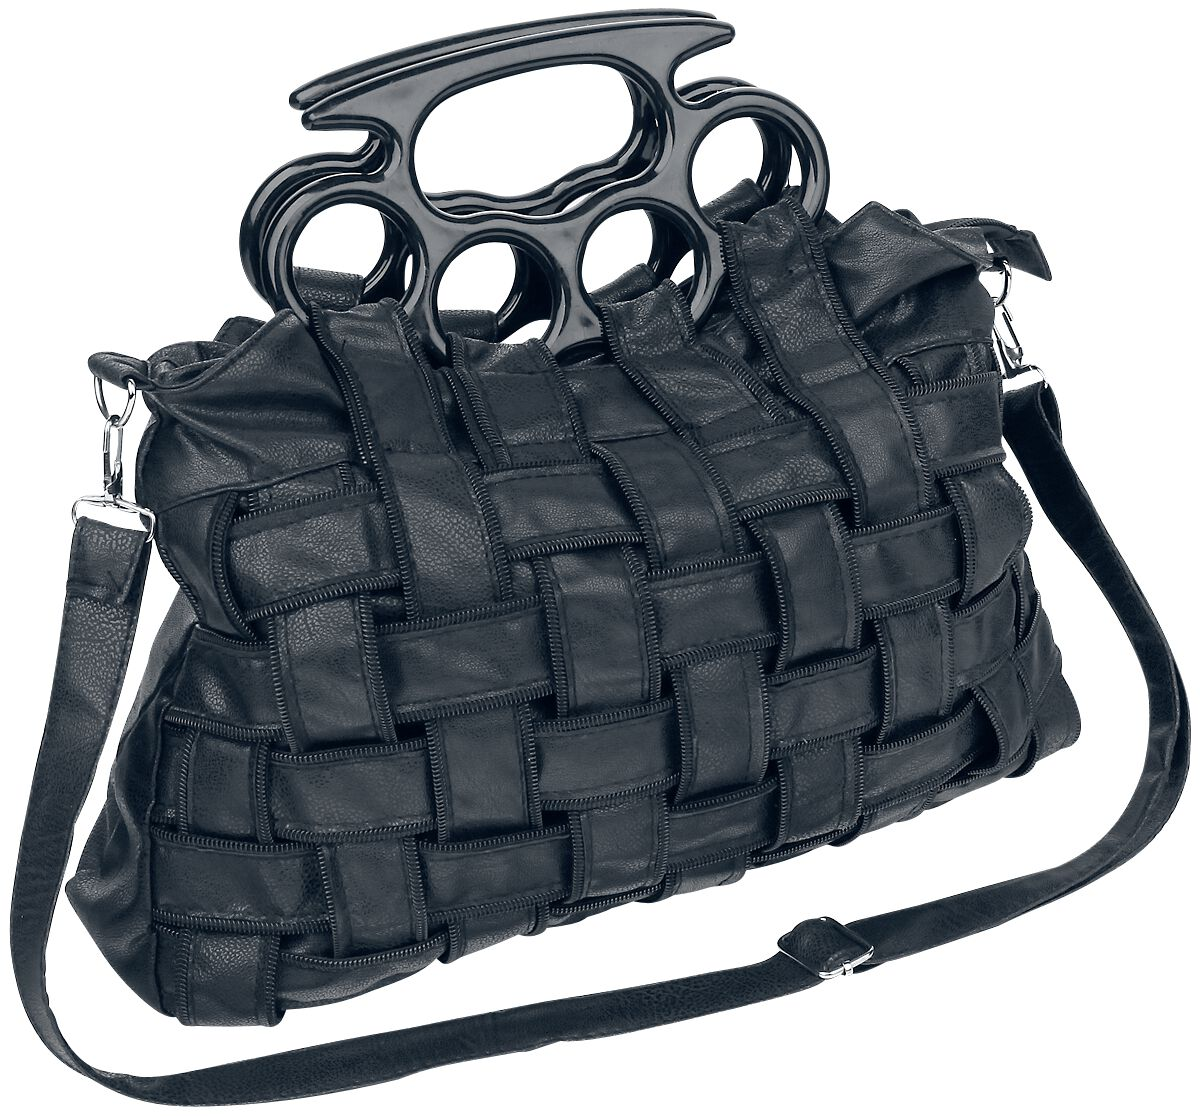 Image of   Poizen Industries Jade Bag Håndtaske sort